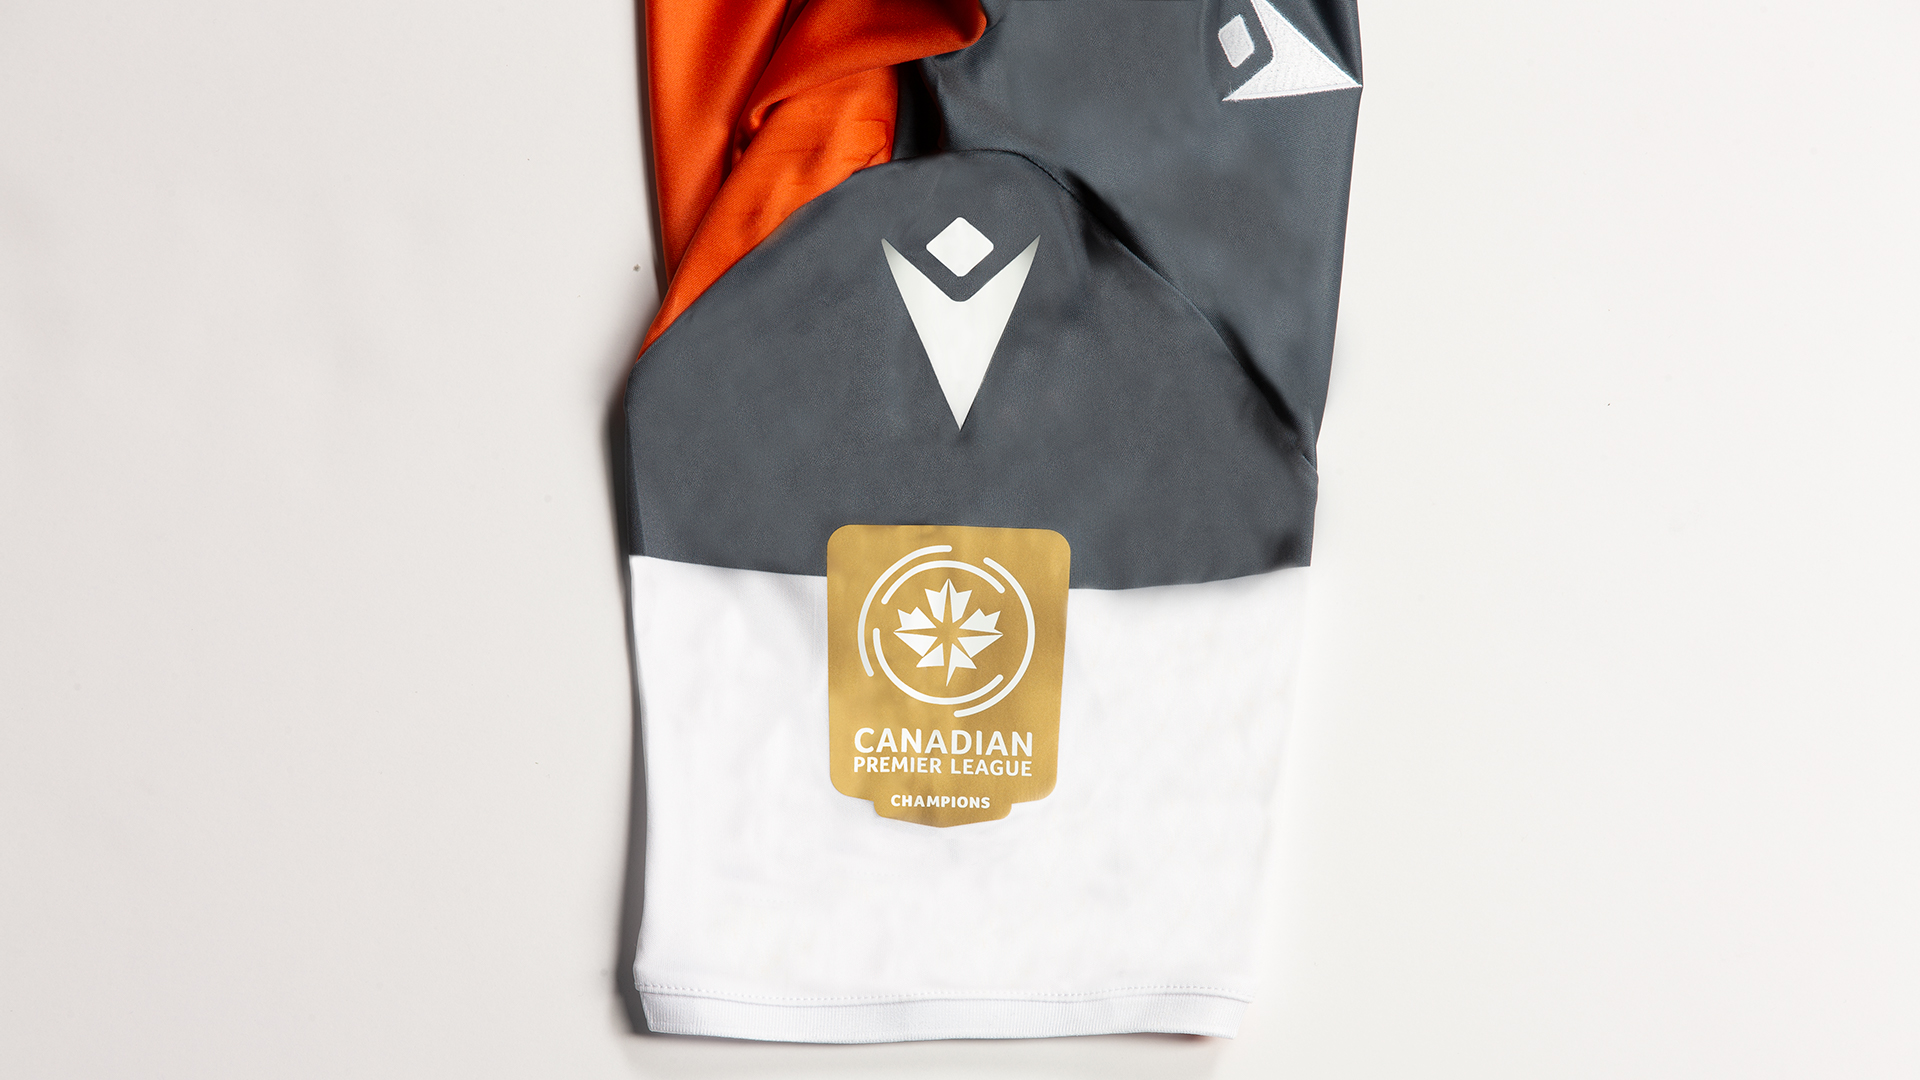 Forge FC's 2019 champions badge. (CPL)